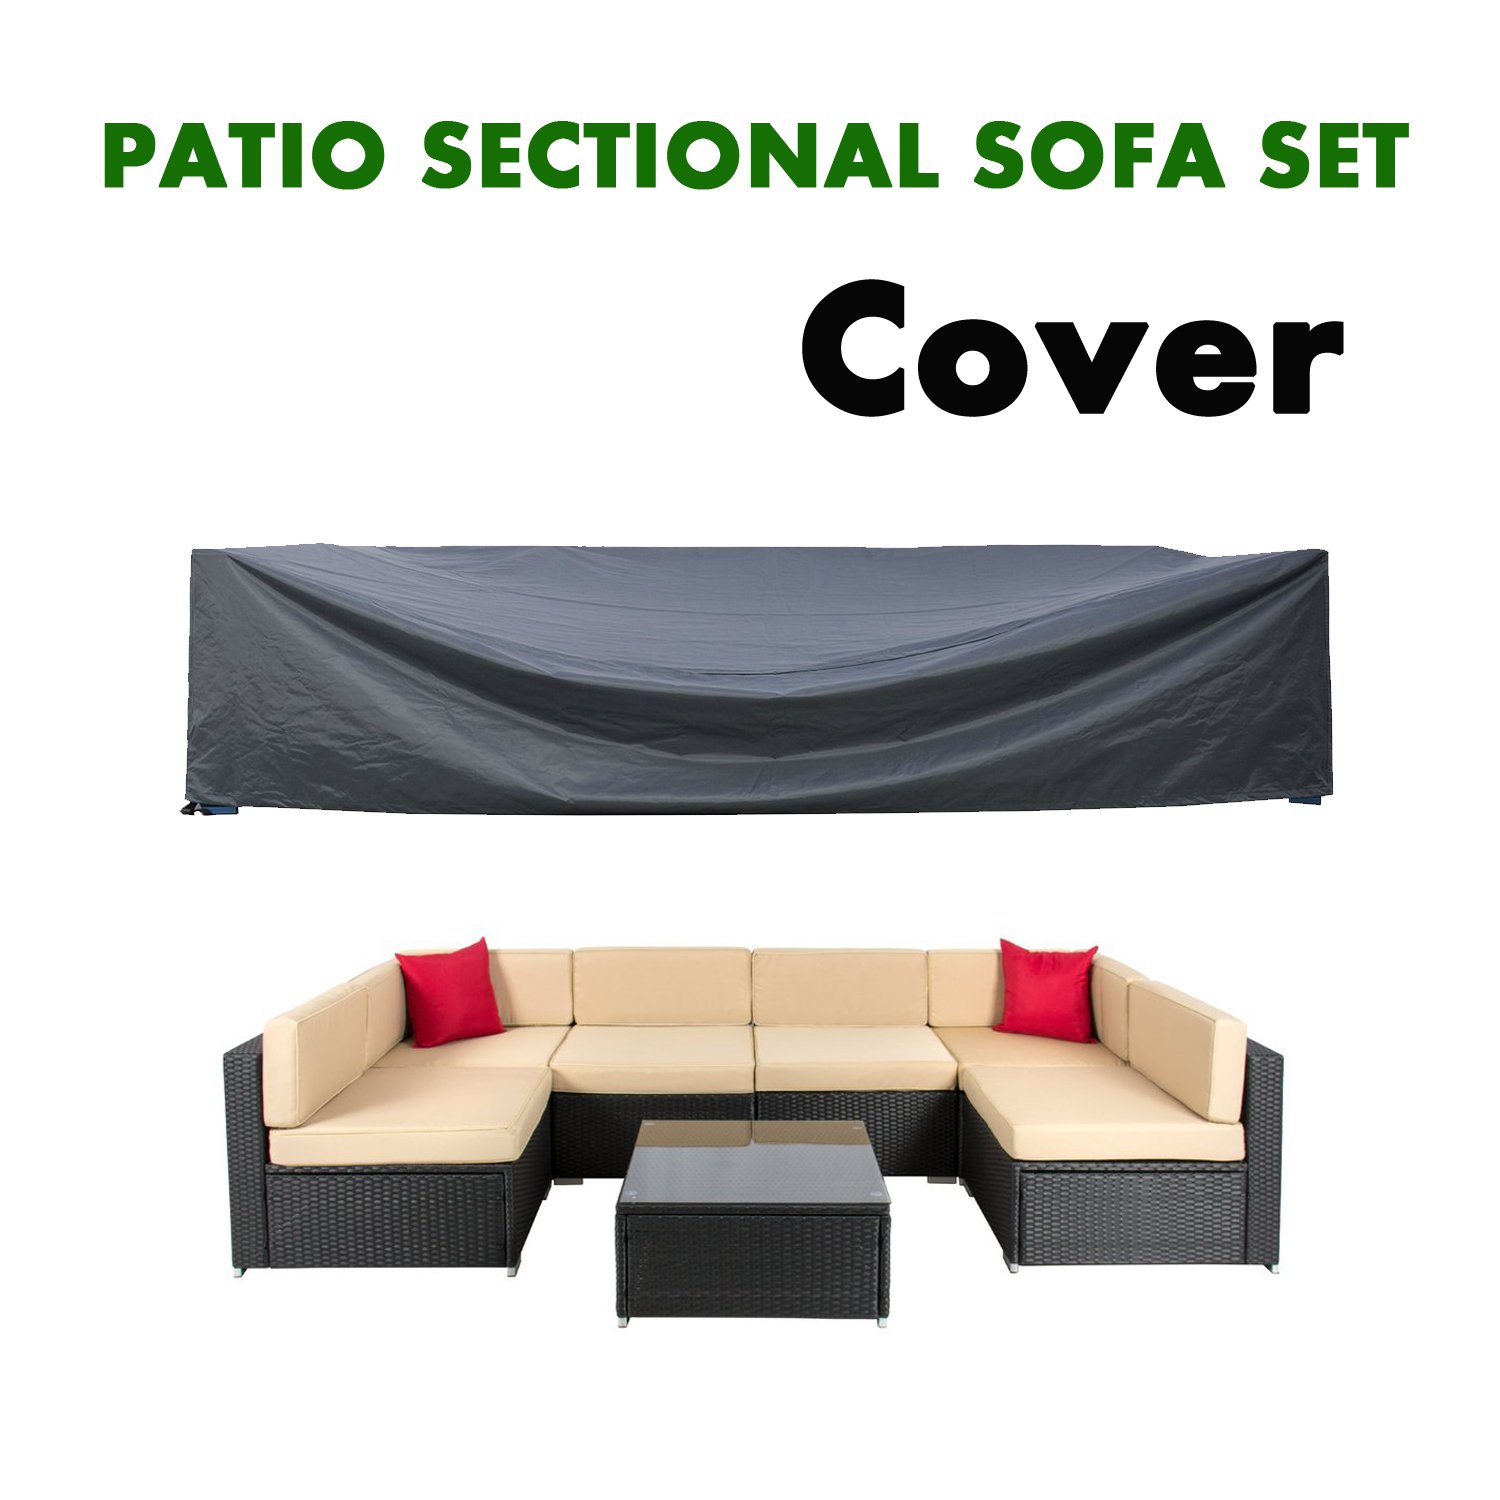 AKEfit Patio Cover,Patio Furniture Set Covers Waterproof Outdoor Furniture Lounge Porch Sofa Waterproof Dust Proof Protective Loveseat Covers